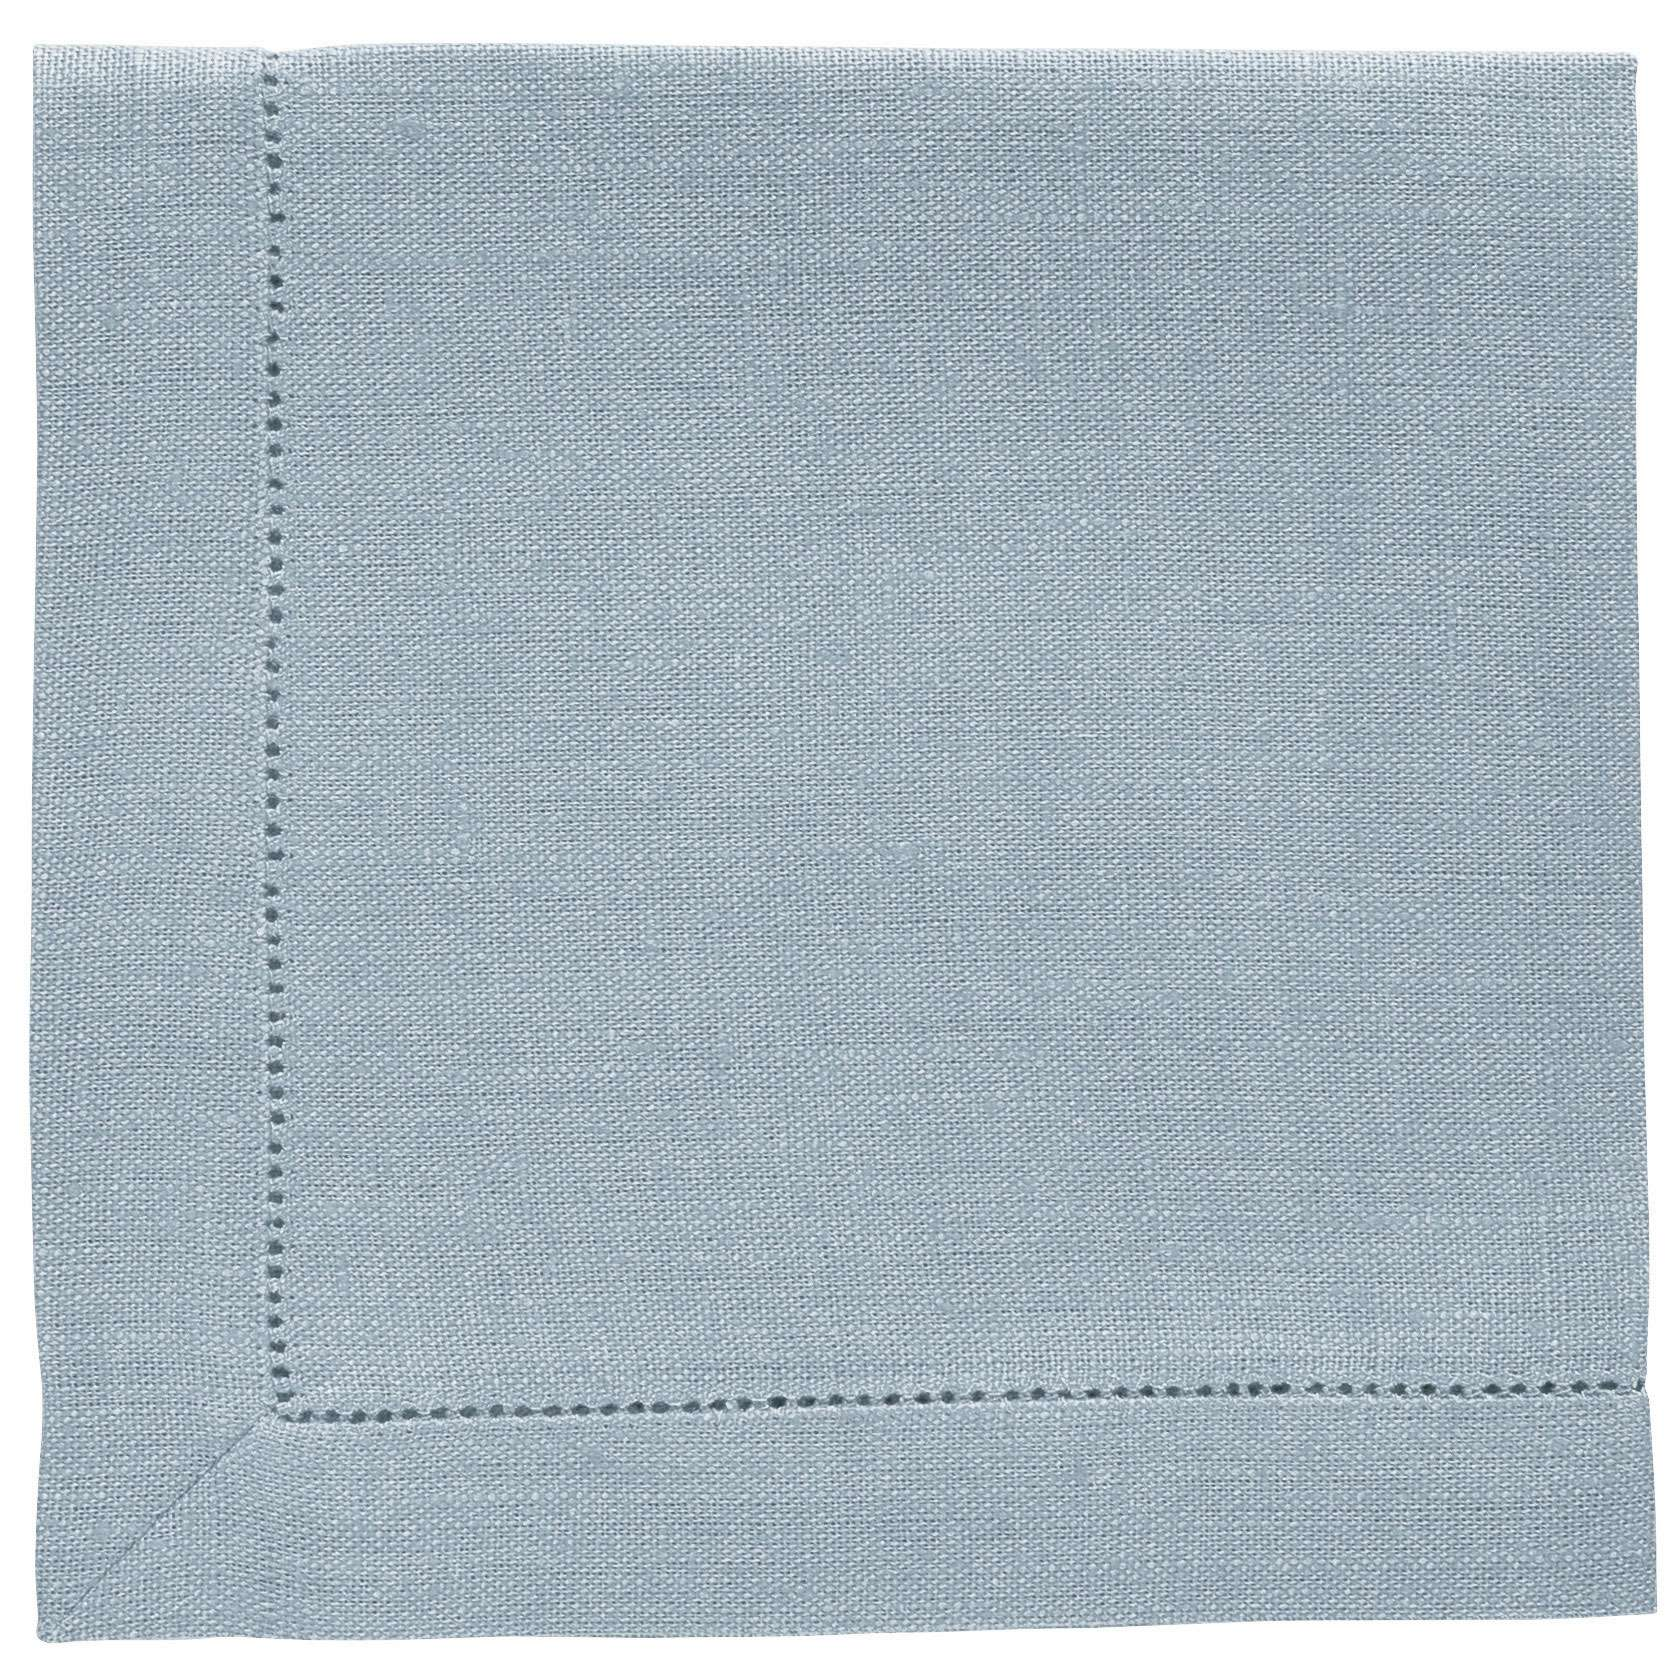 NAPKIN <br />dusty blue